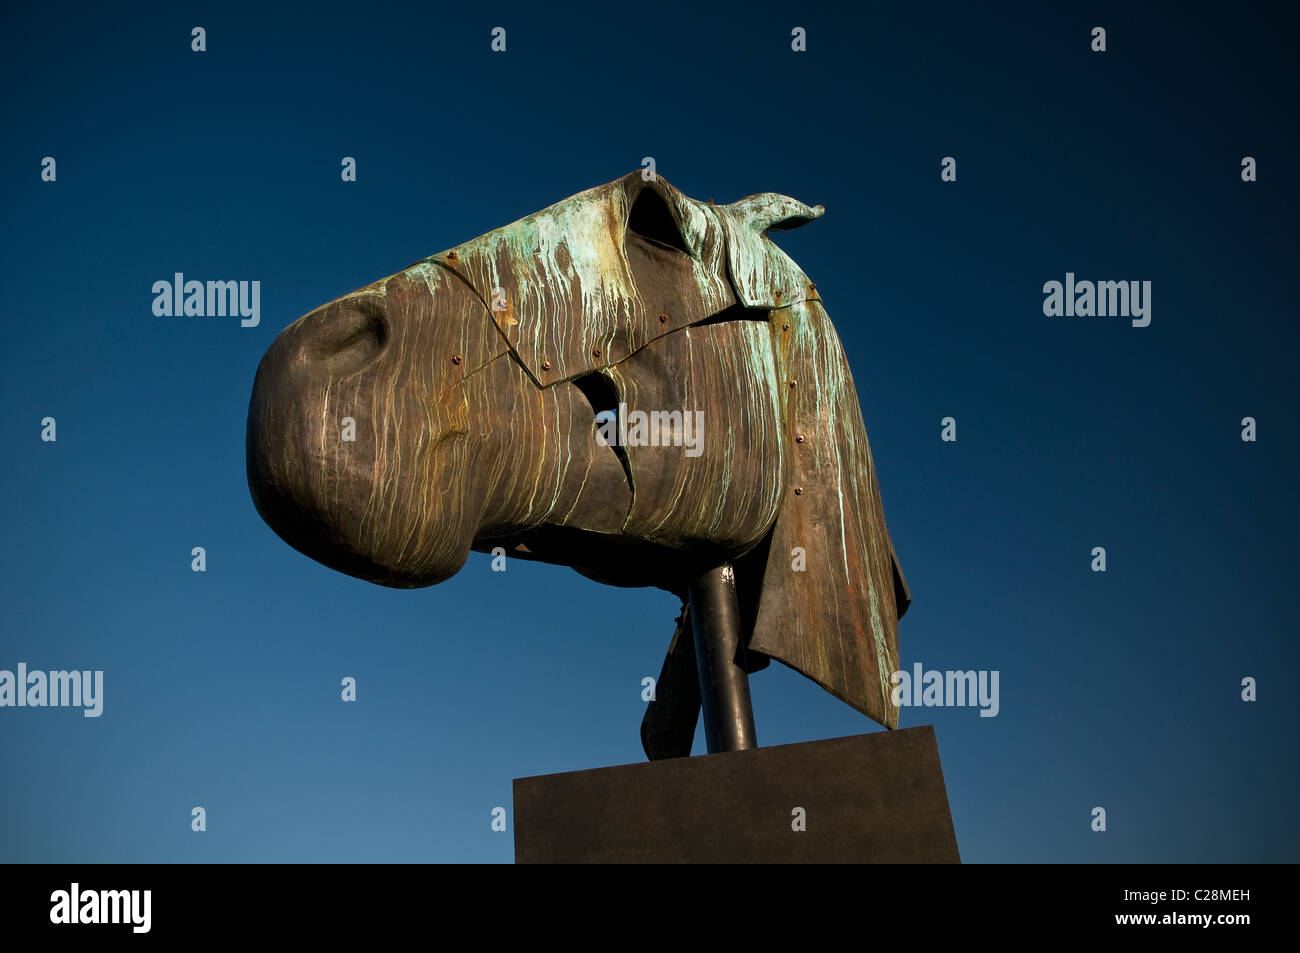 "Die ""Artemis"" Skulptur auf der Trundle in der Nähe von Goodwood, Chichester, West Sussex, UK Stockbild"